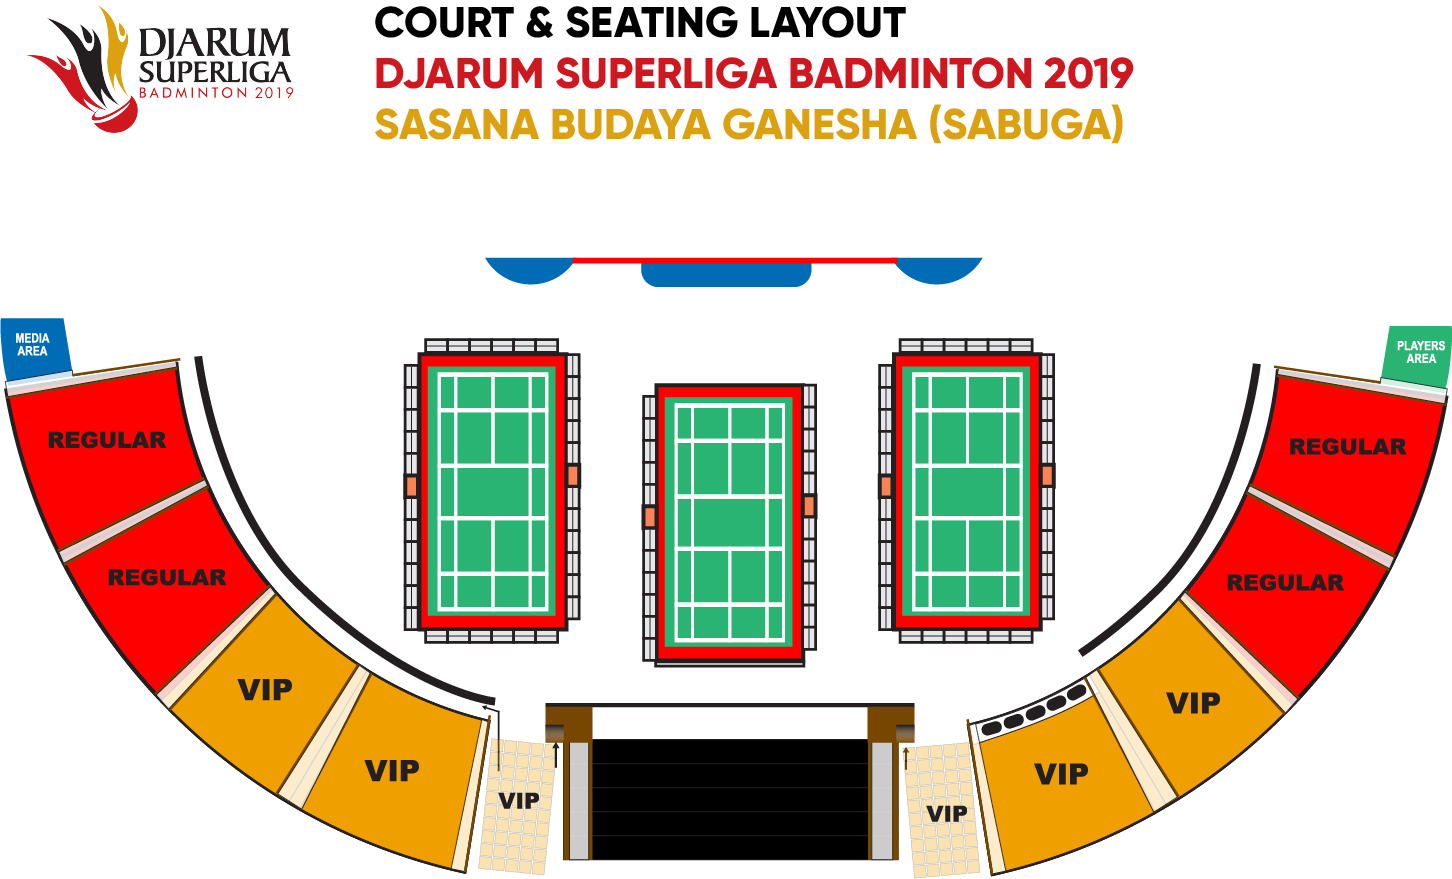 Djarum Superliga Badminton 2019 - Seat Layout